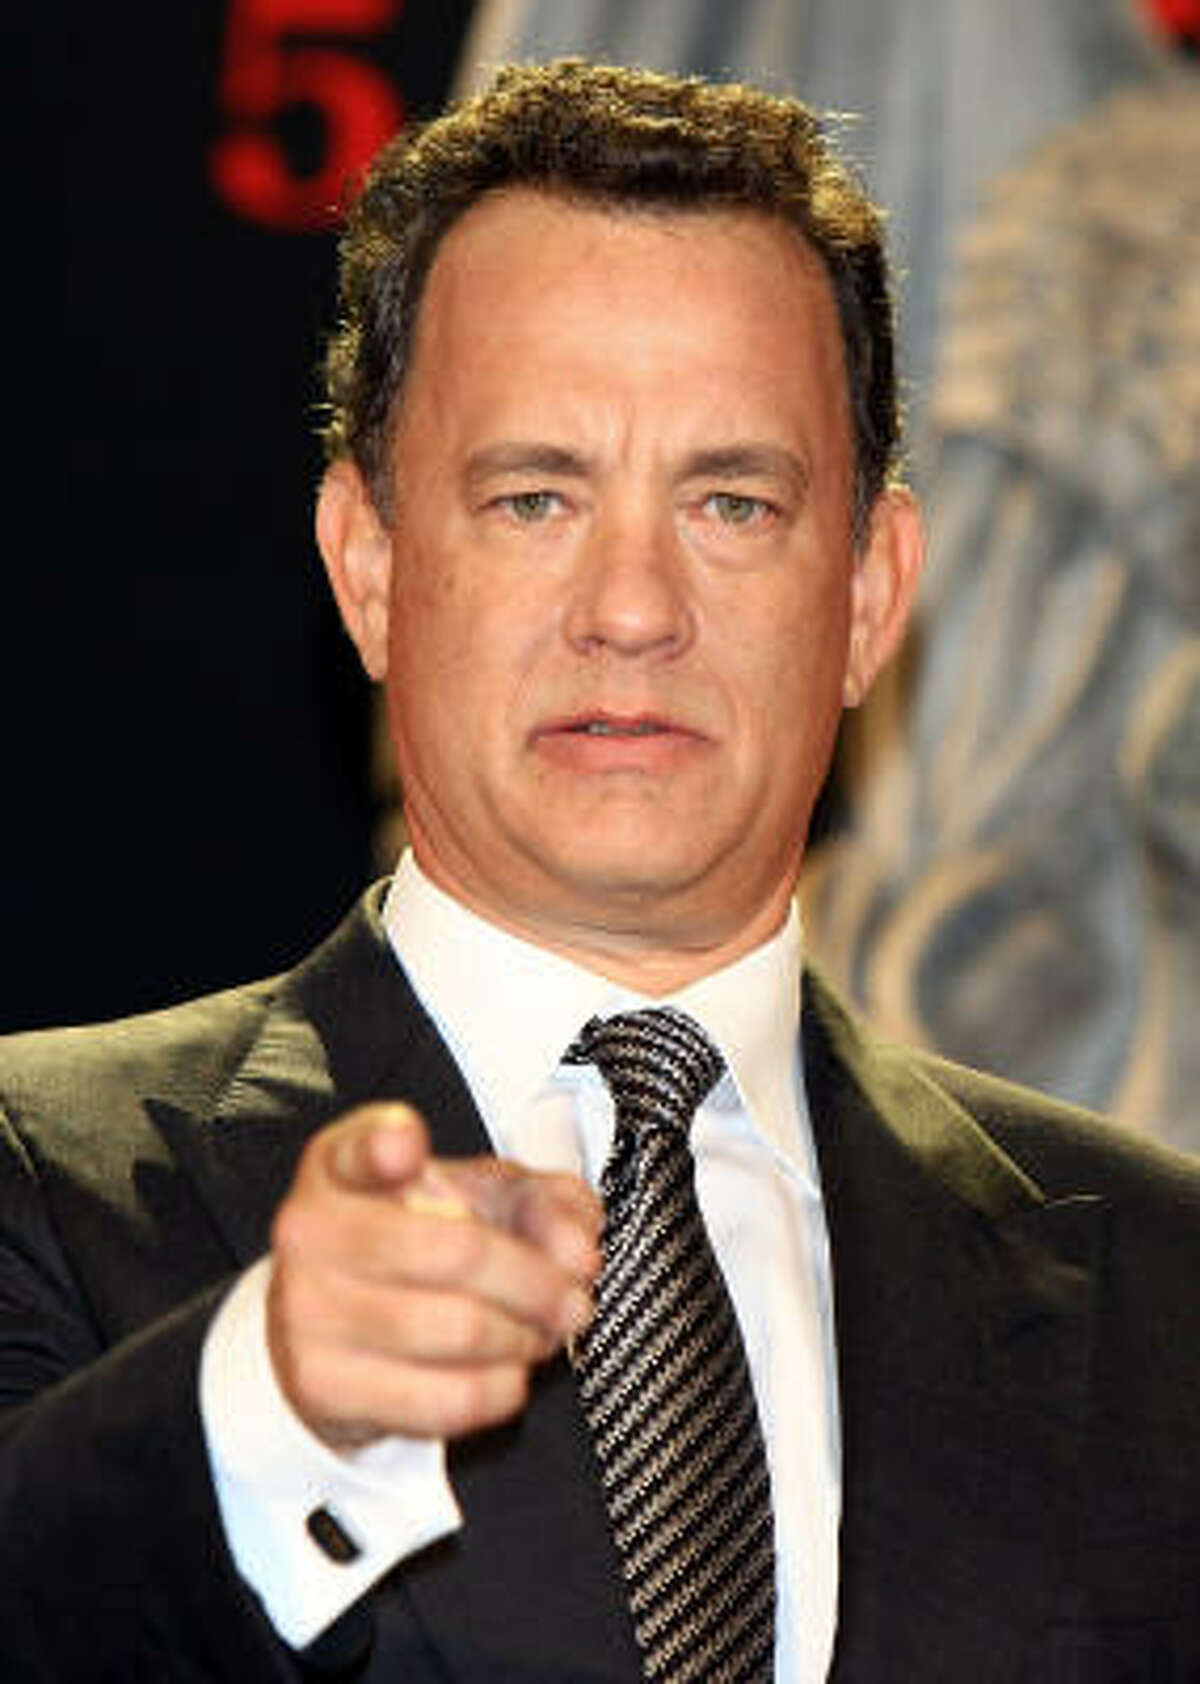 Actor Tom Hanks attends the Angels & Demons premiere.